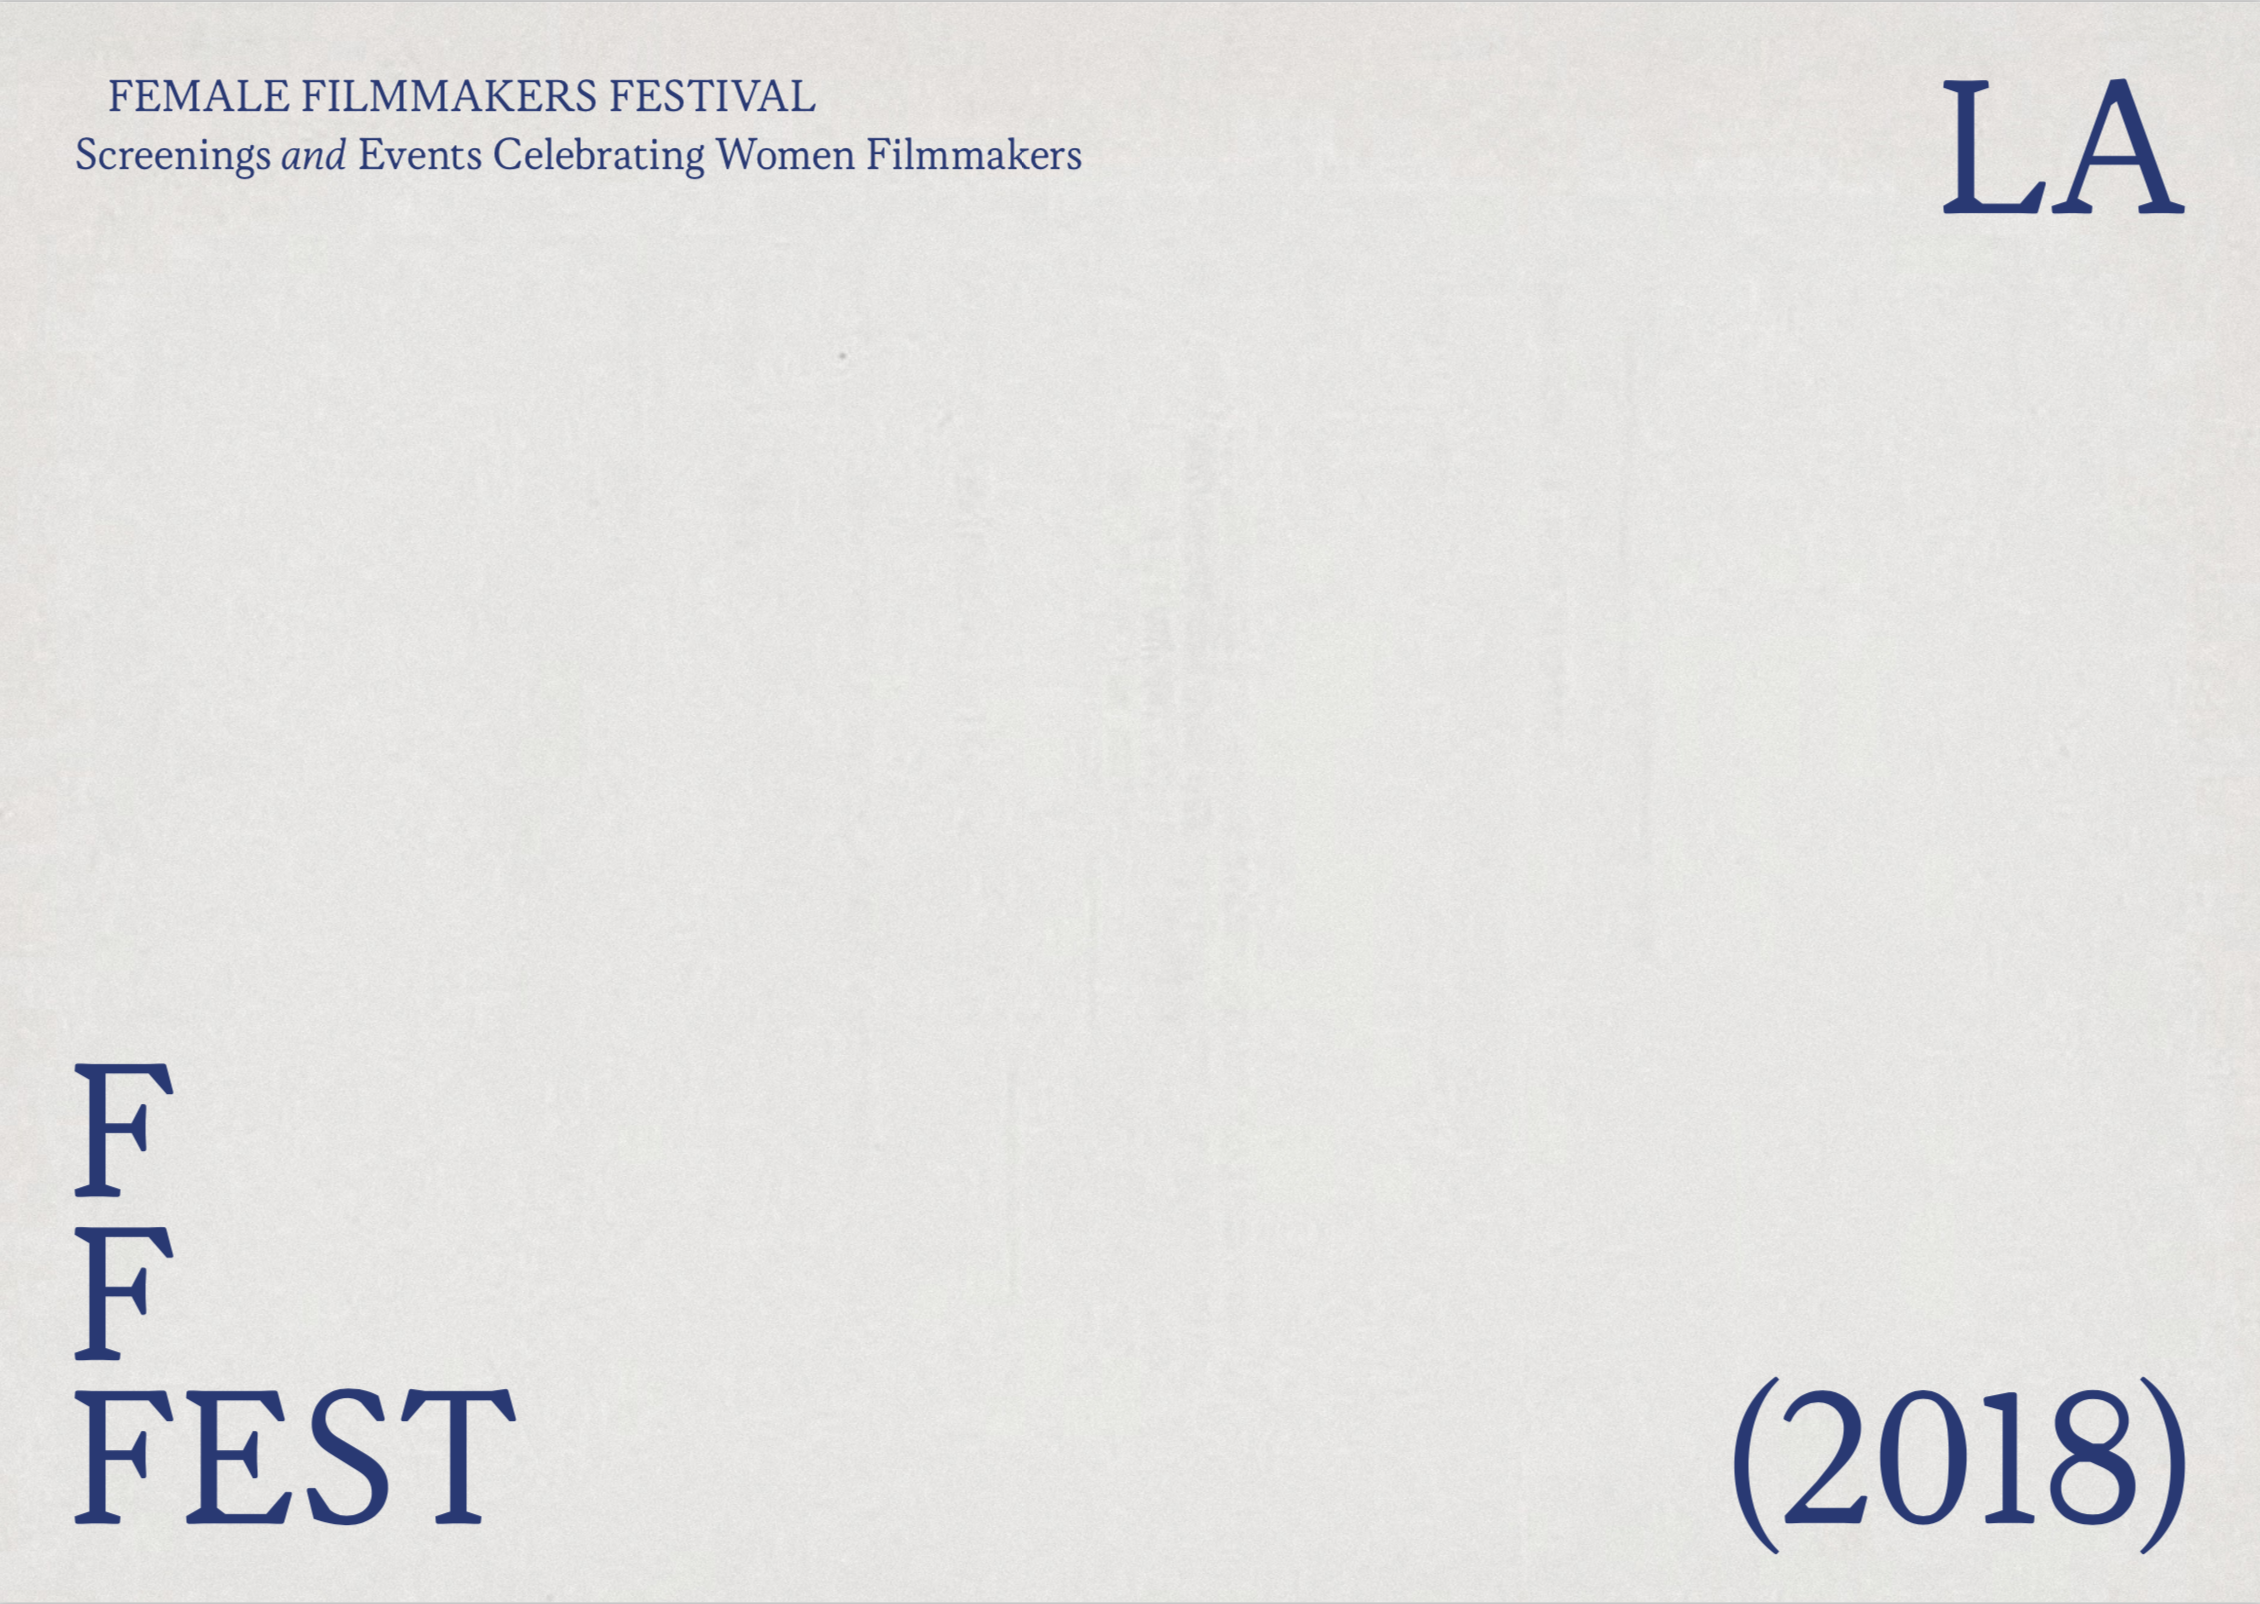 Passerbuys & Women And Film Present: Female Filmmakers Festival